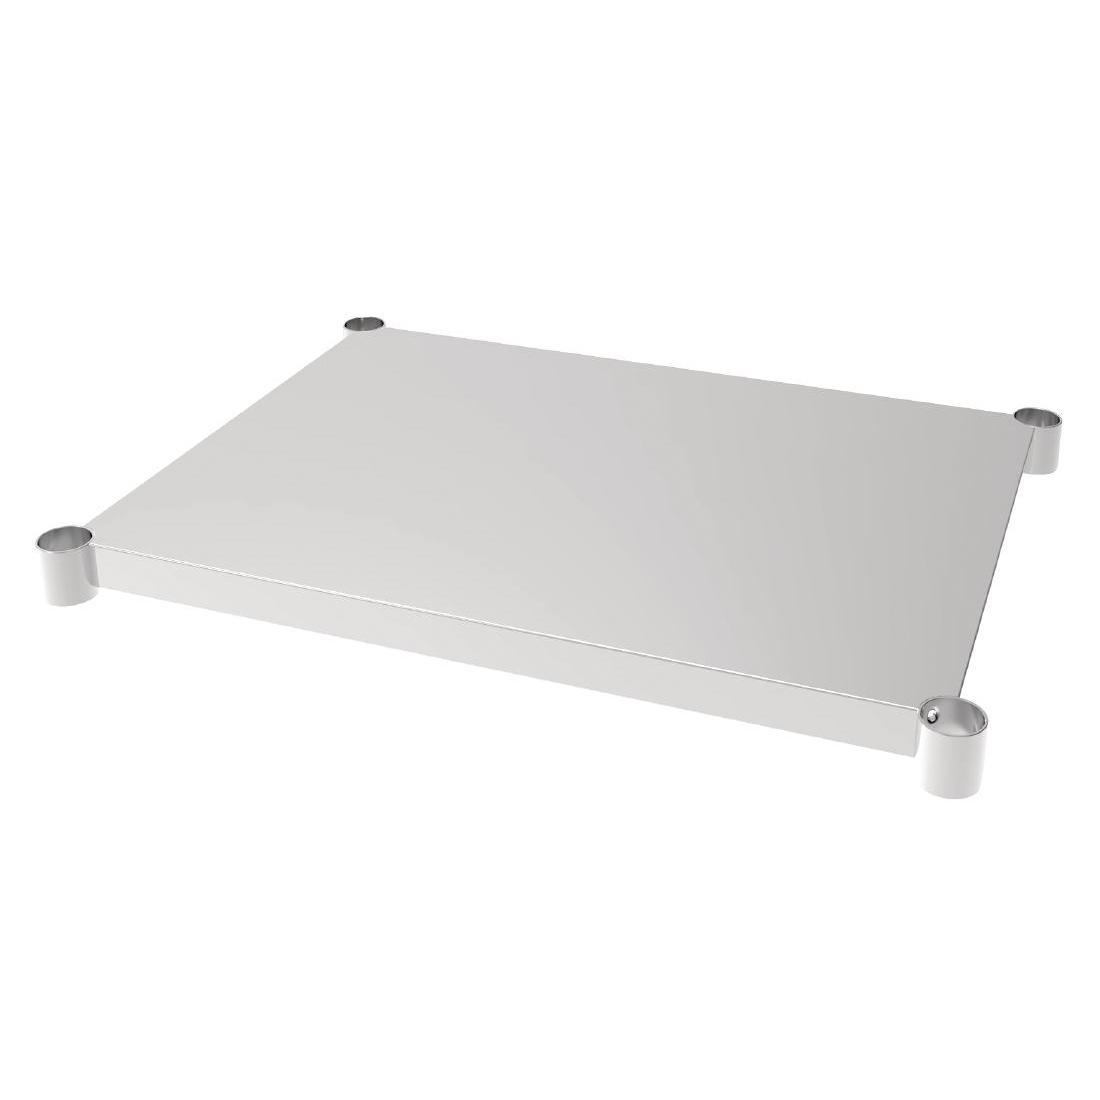 Vogue Stainless Steel Table Shelf 700x900mm - Each - CP836